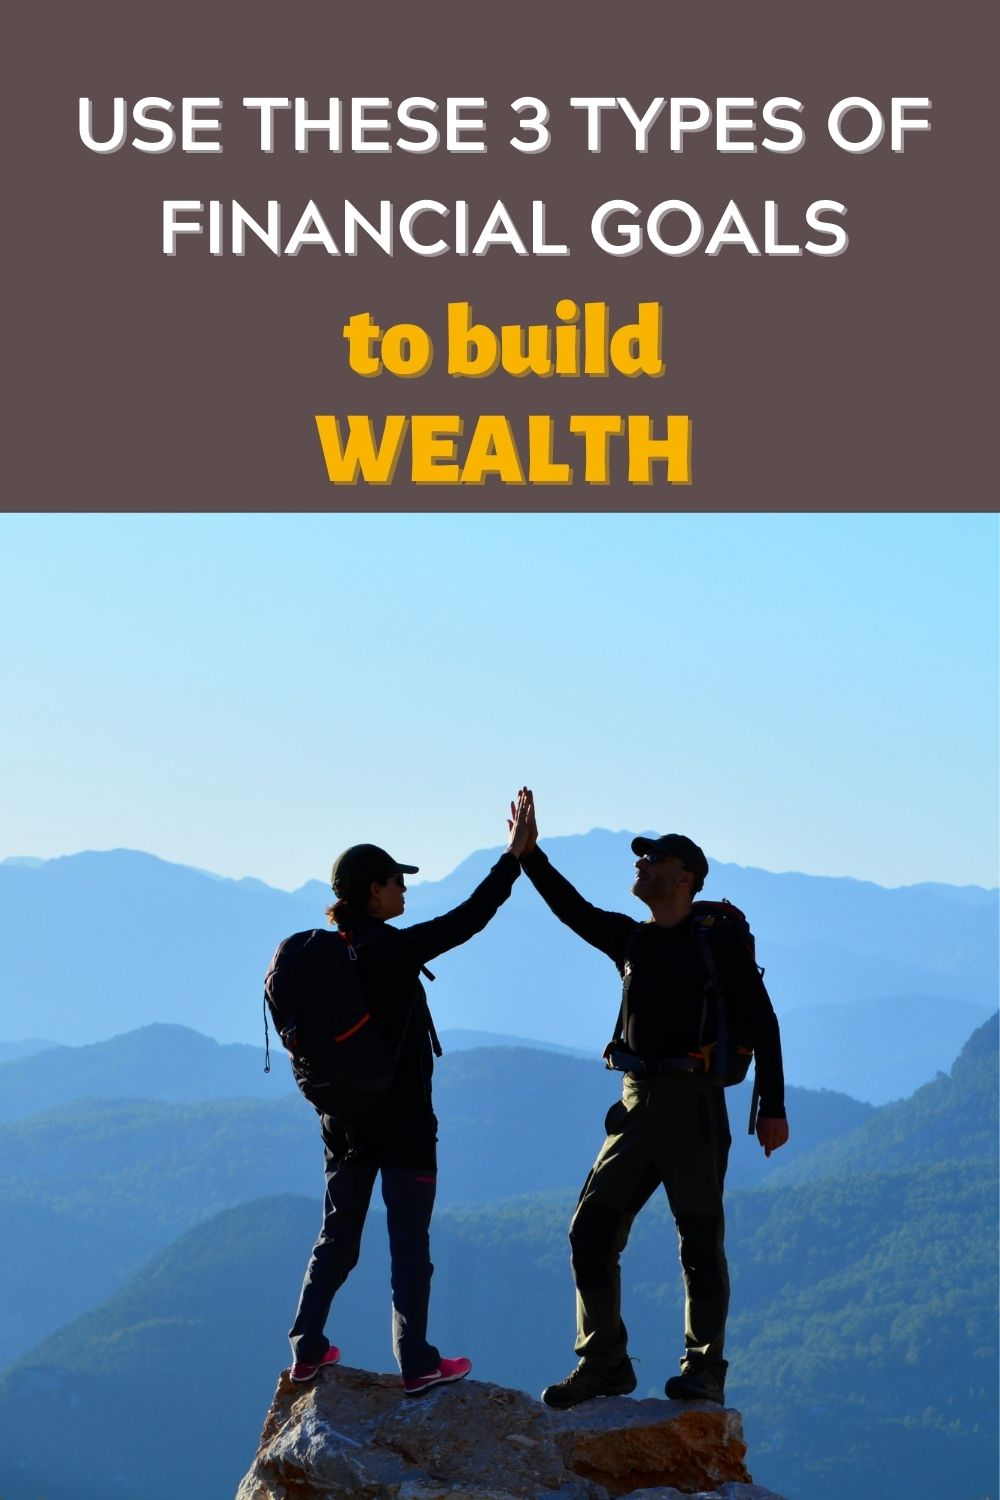 Three Types of Financial Goals to Build Wealth